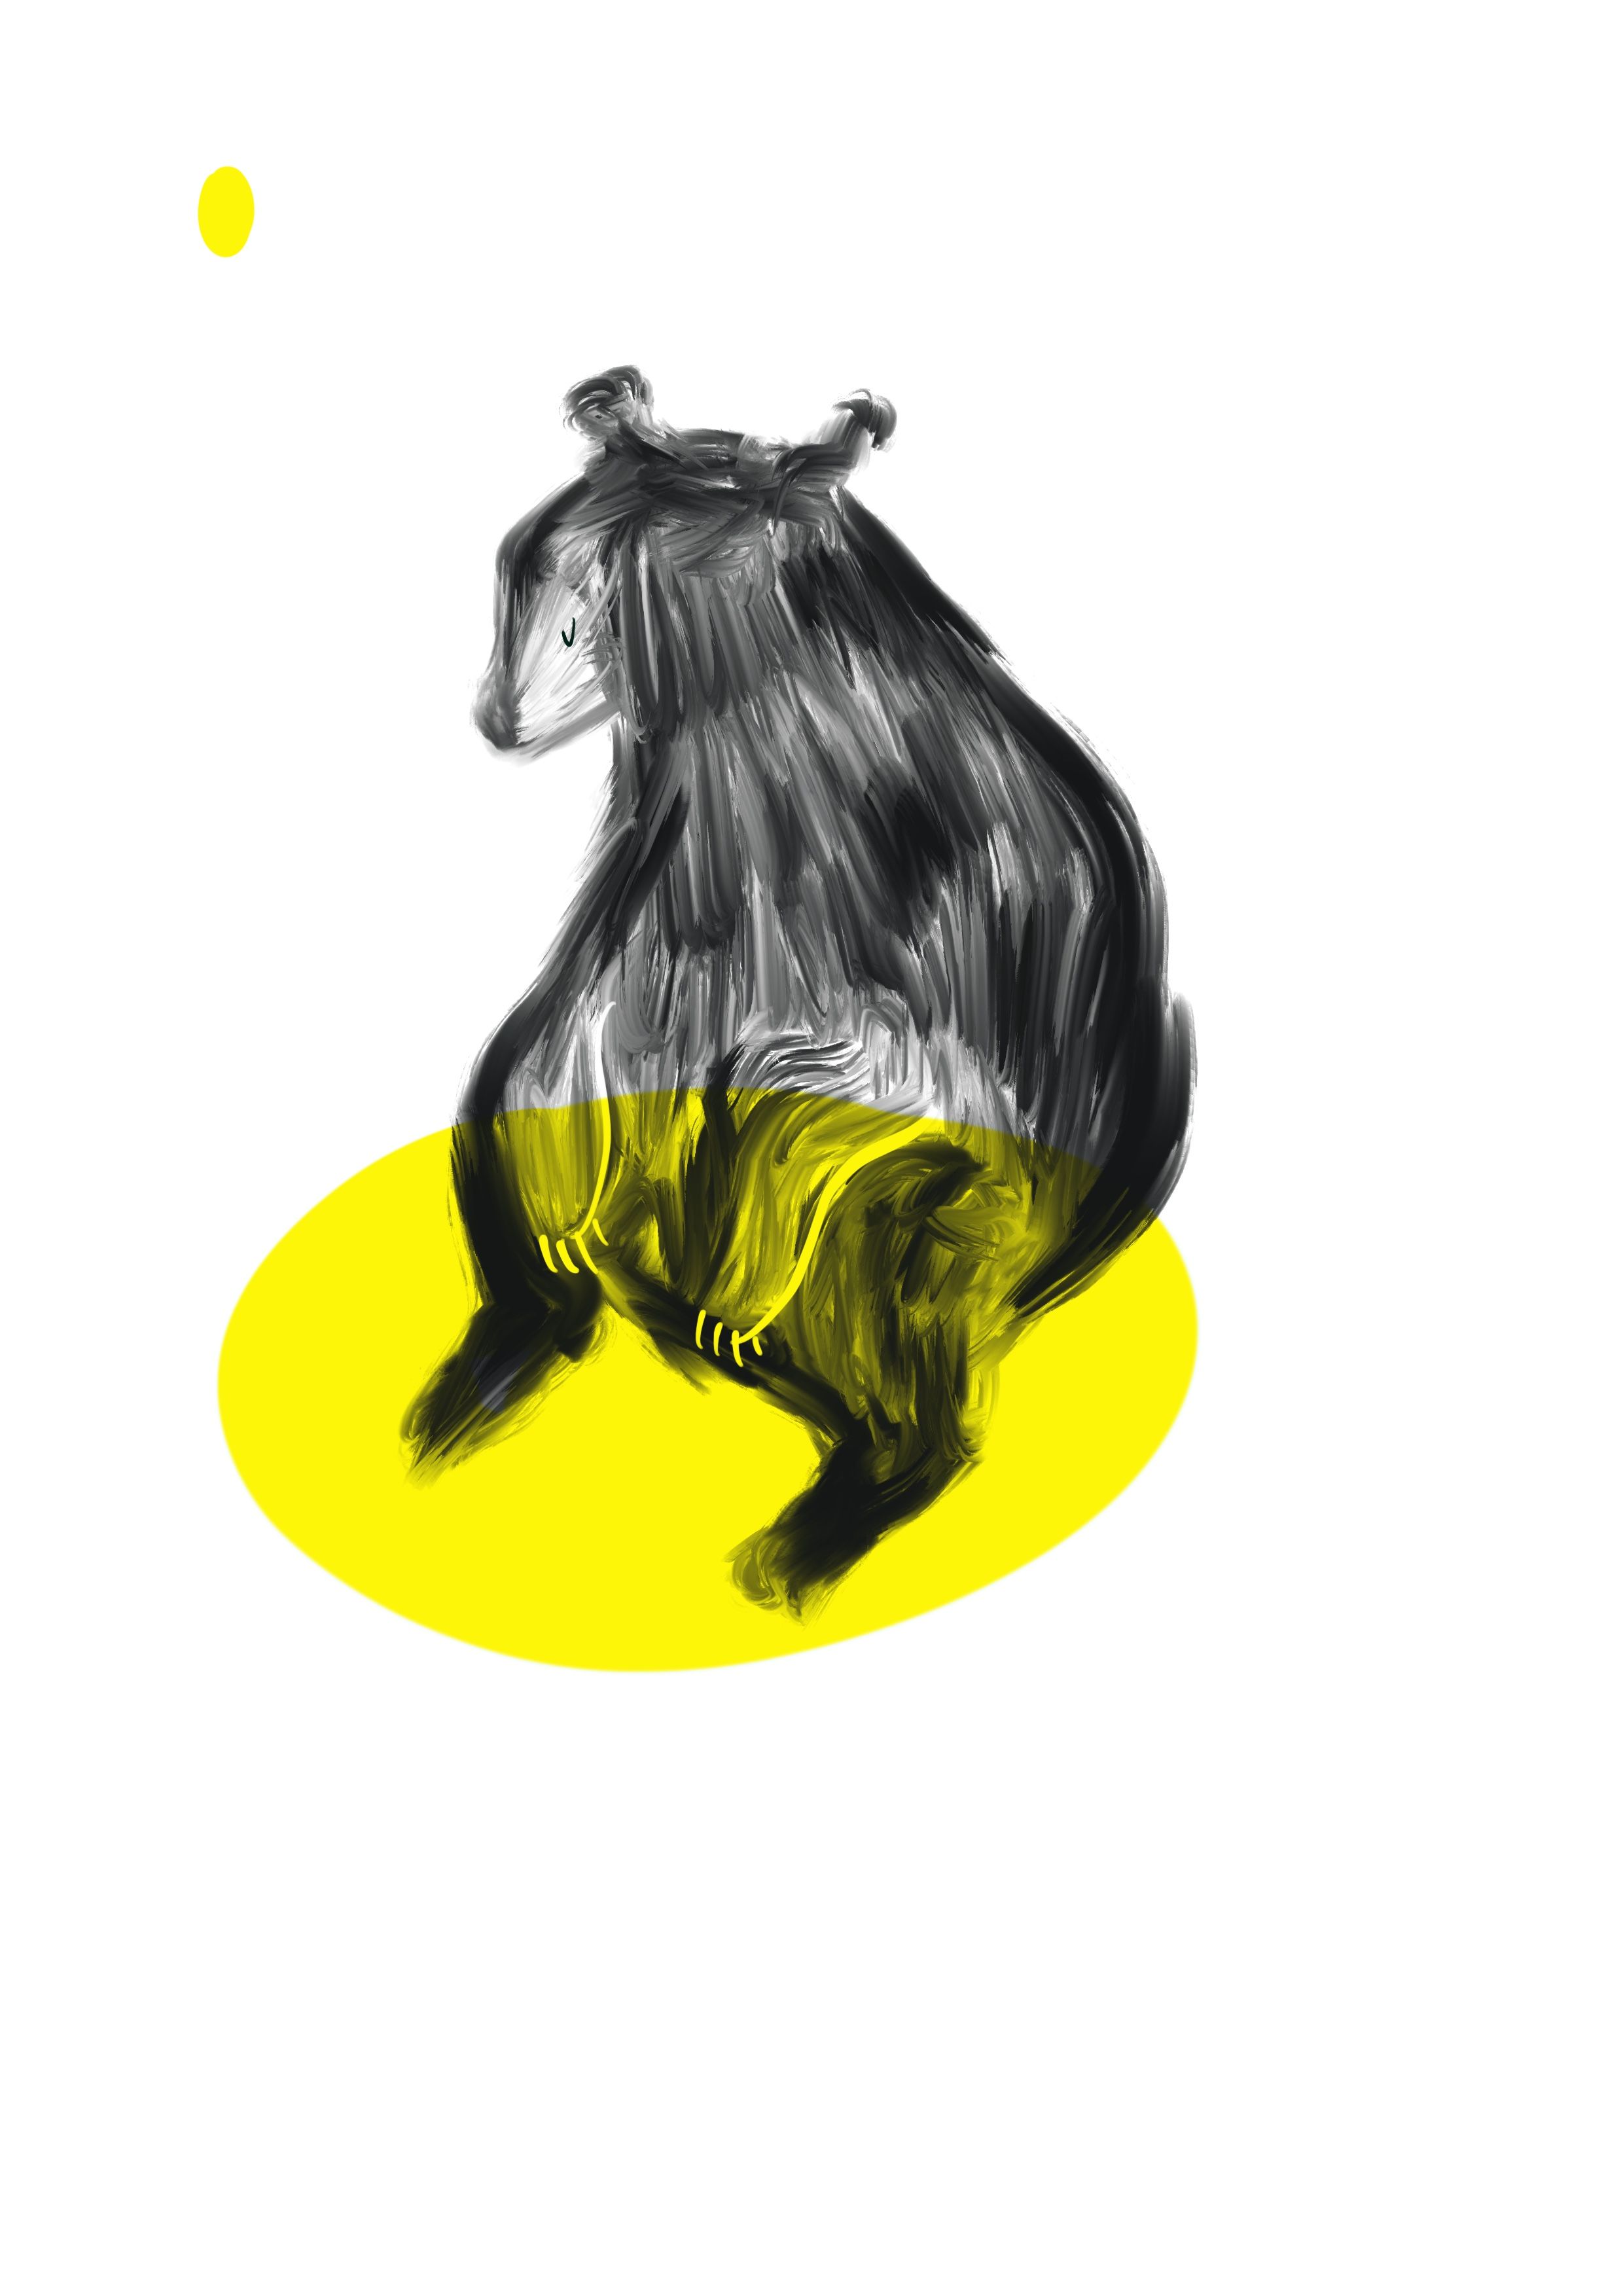 Part of series of illustrations created to raise awareness around the plight of  Bears in Canada  - the destruction of their habitat, and the important role bears play in the wider ecosystem.